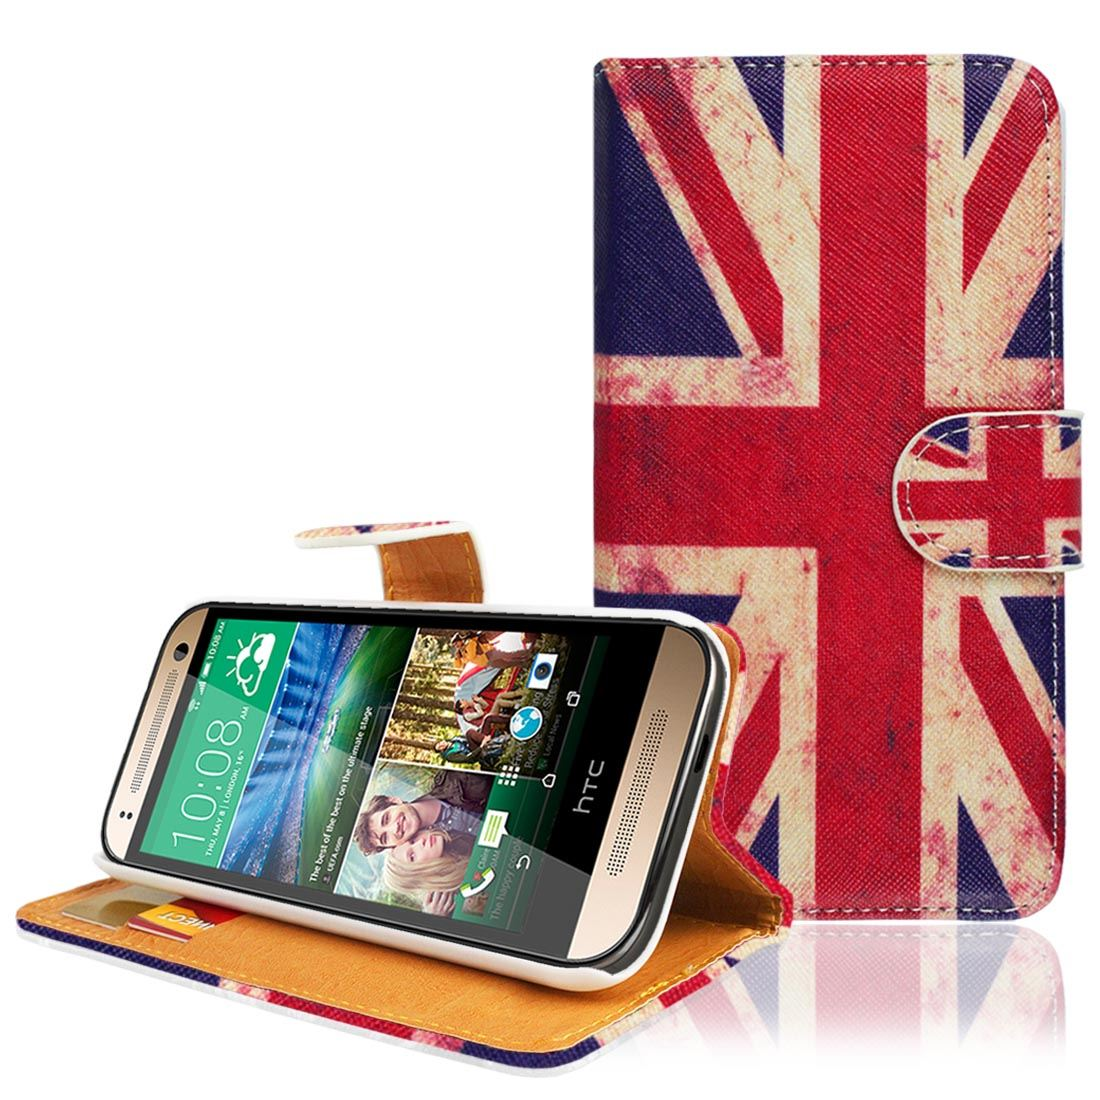 UNION JACK PRINTED PU LEATHER WALLET FLIP CASE COVER FOR VARIOUS PHONE MODELS